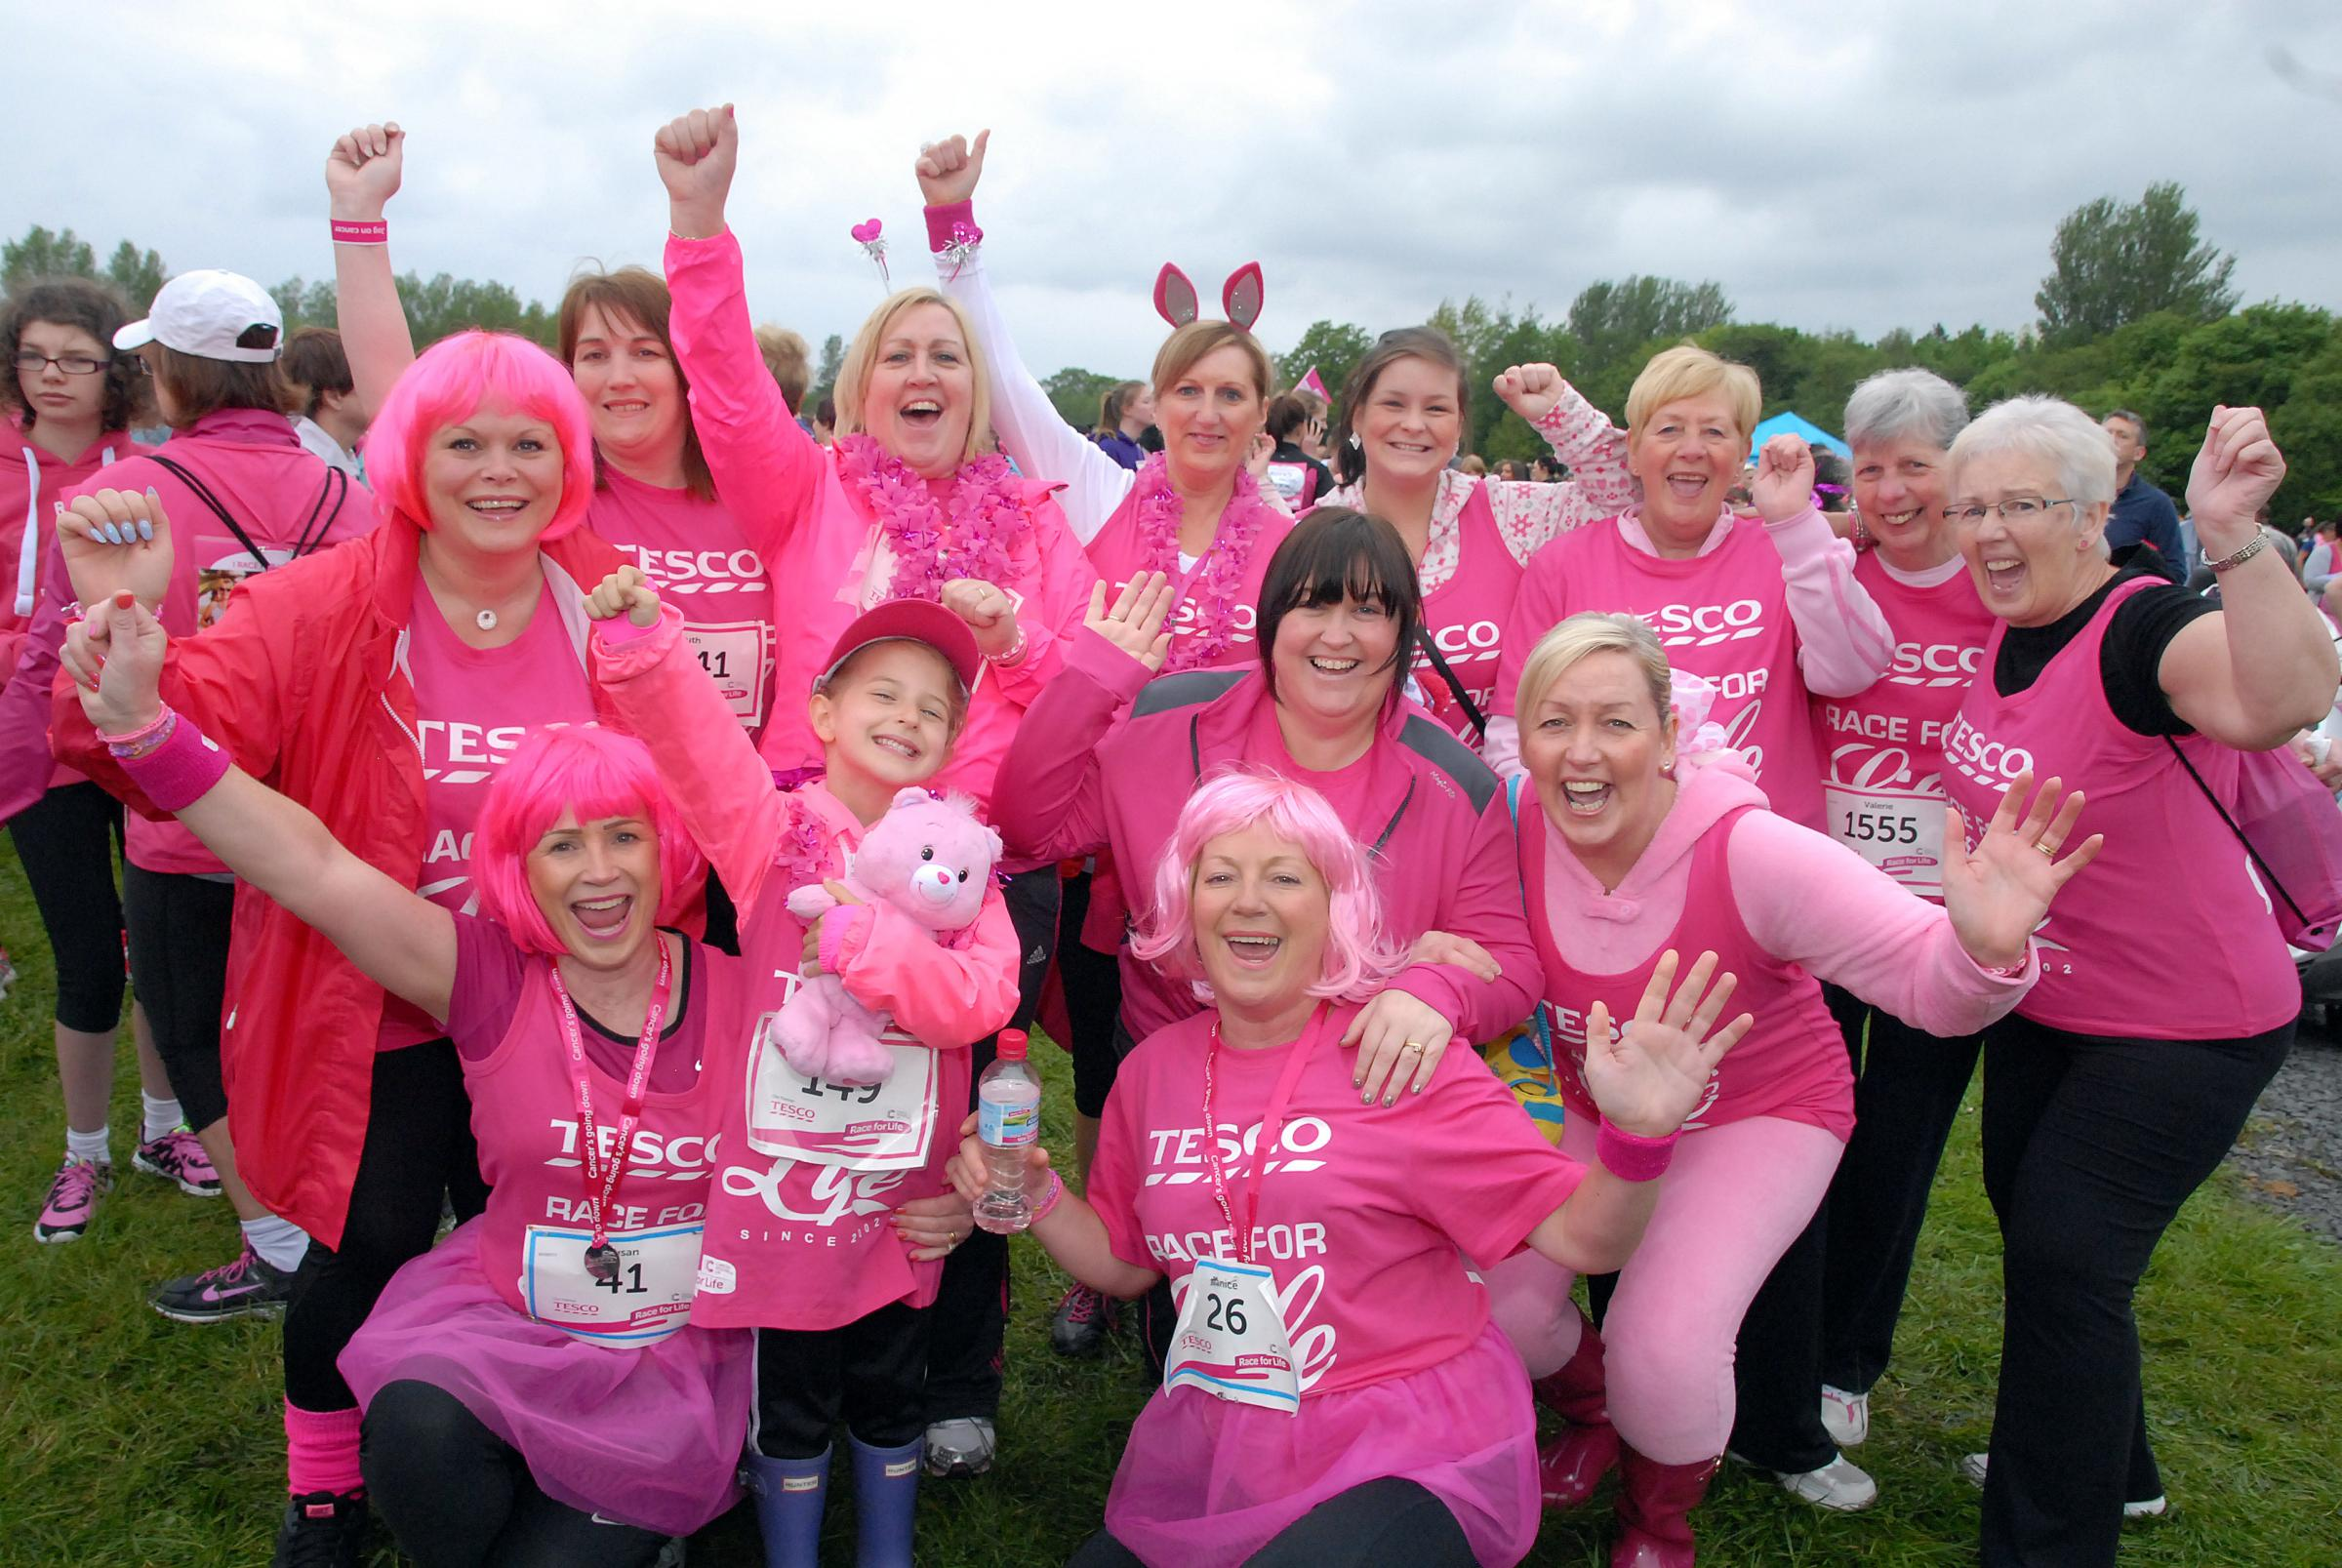 Mums urged to think pink and sign up for Race for Life this Mother's Day